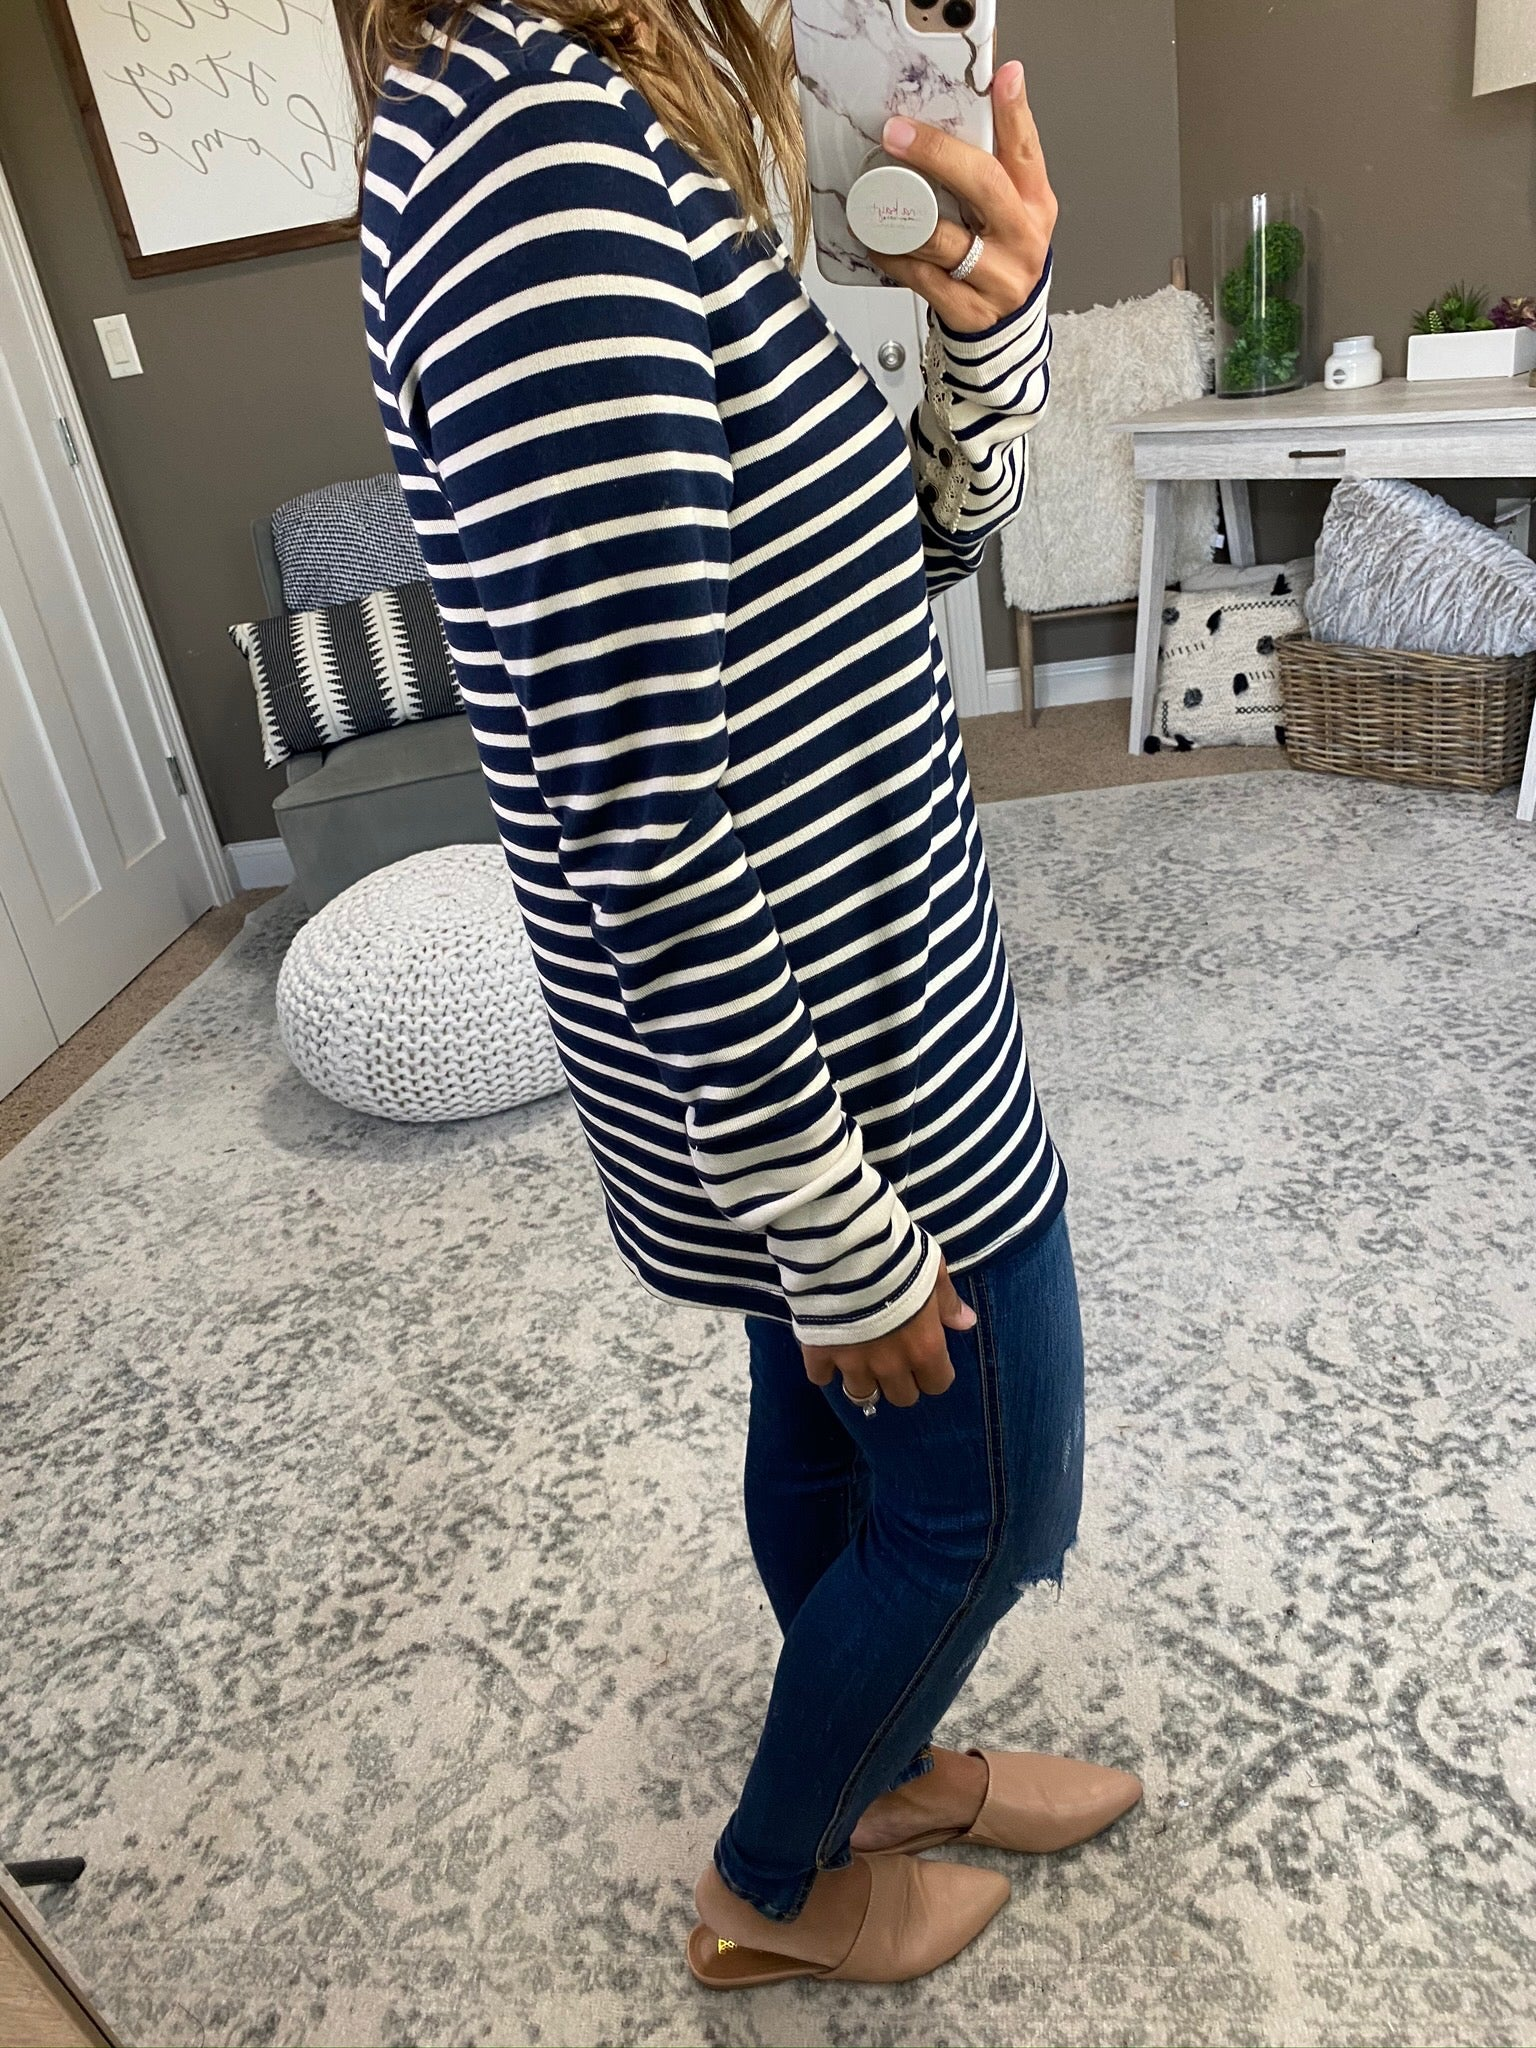 Can't Stop Now Navy & Ivory Striped Long Sleeve with Buttons & Lace Detailing